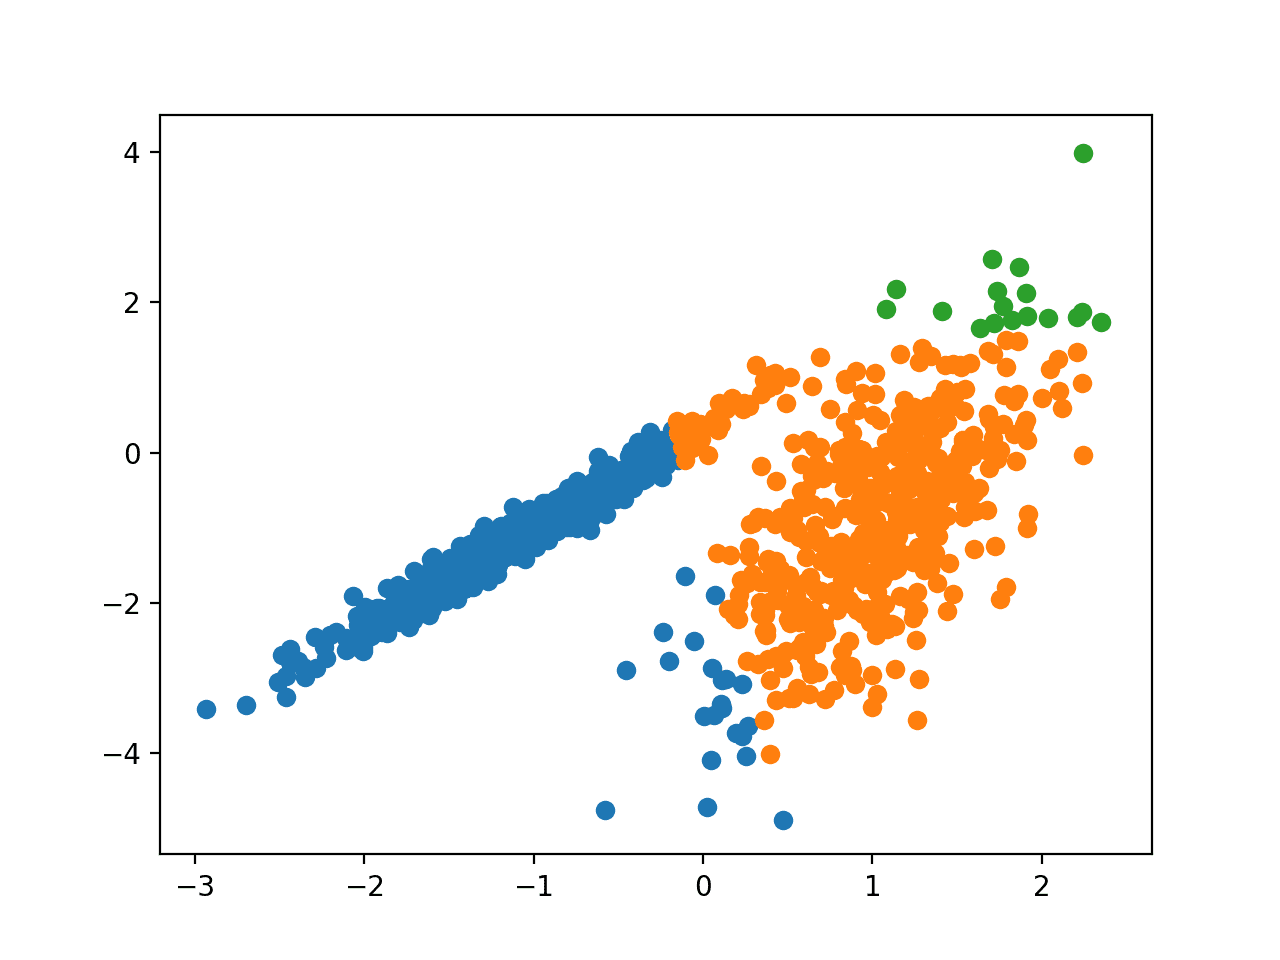 Scatter Plot of Dataset With Clusters Identified Using Mean Shift Clustering